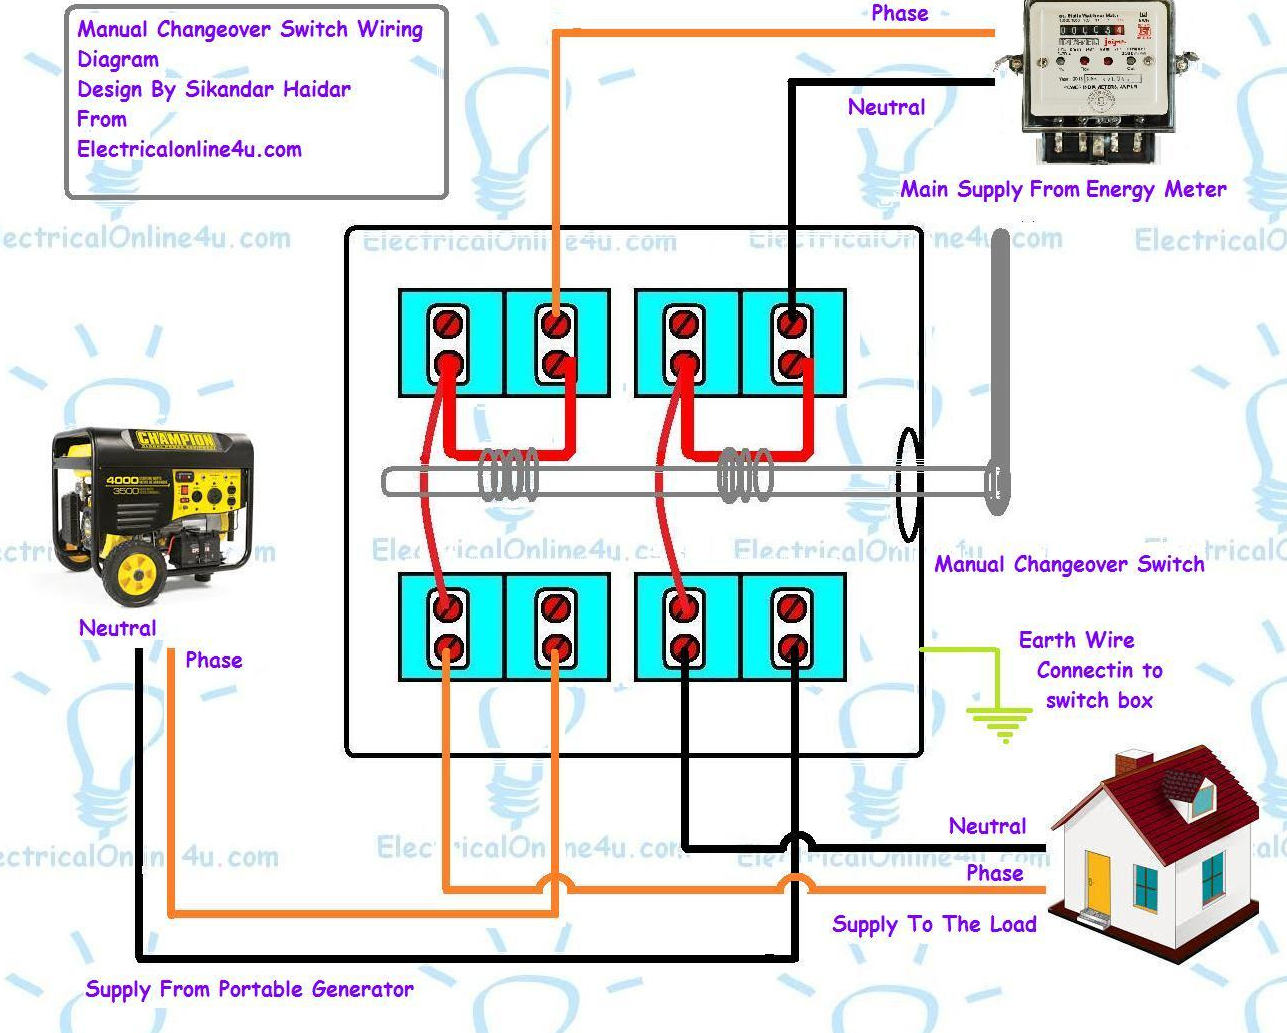 automotive wiring diagram maker manual changeover switch wiring diagram for portable ... #7